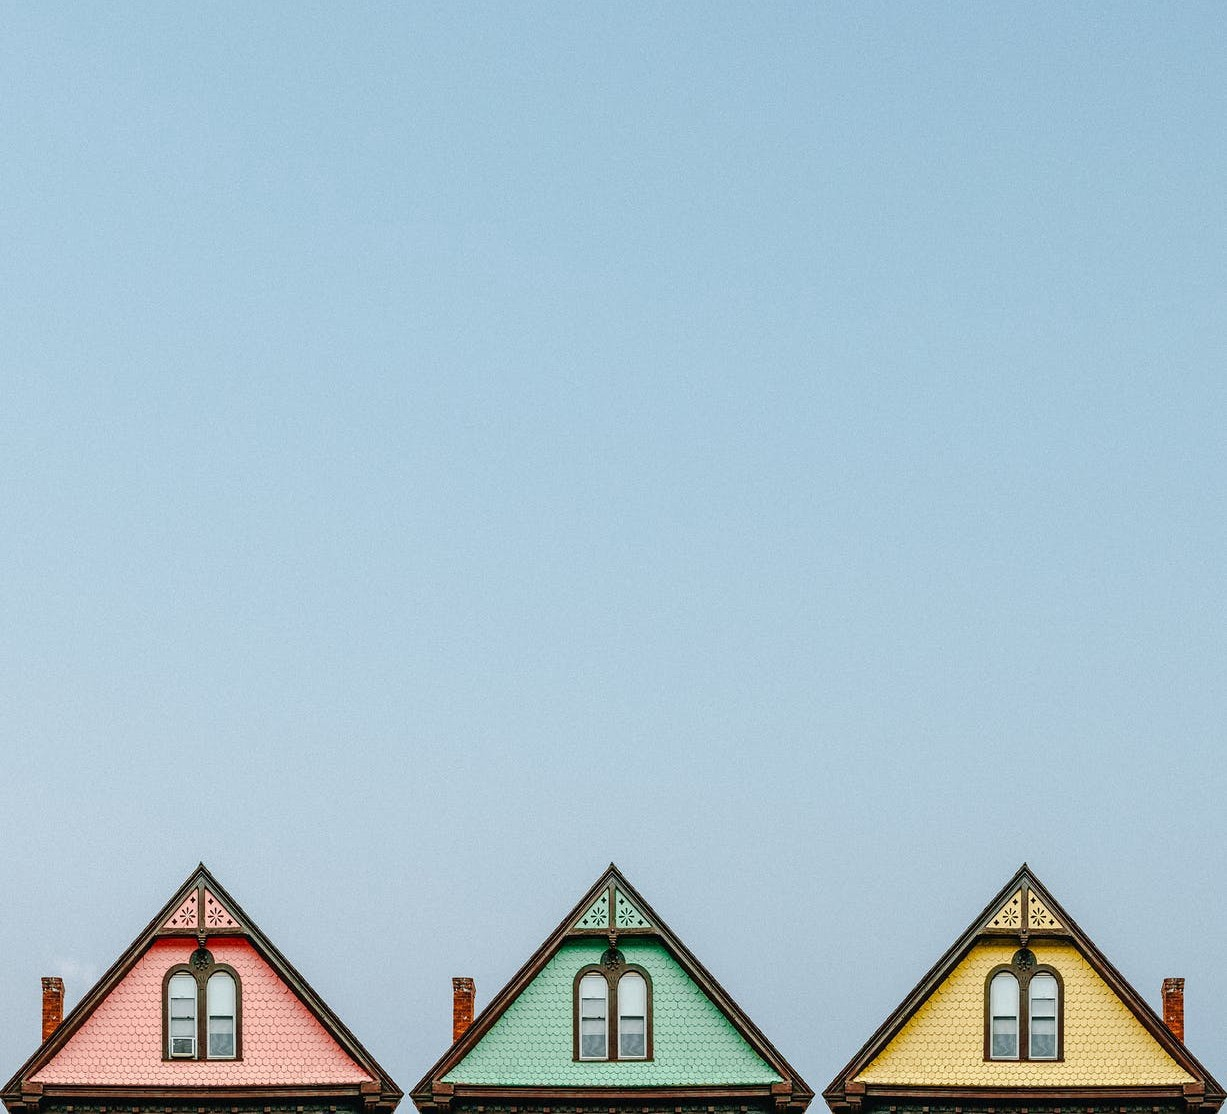 A simple picture of three cropped rooftops next to each other, very close together. Like painted ladies in San Francisco.